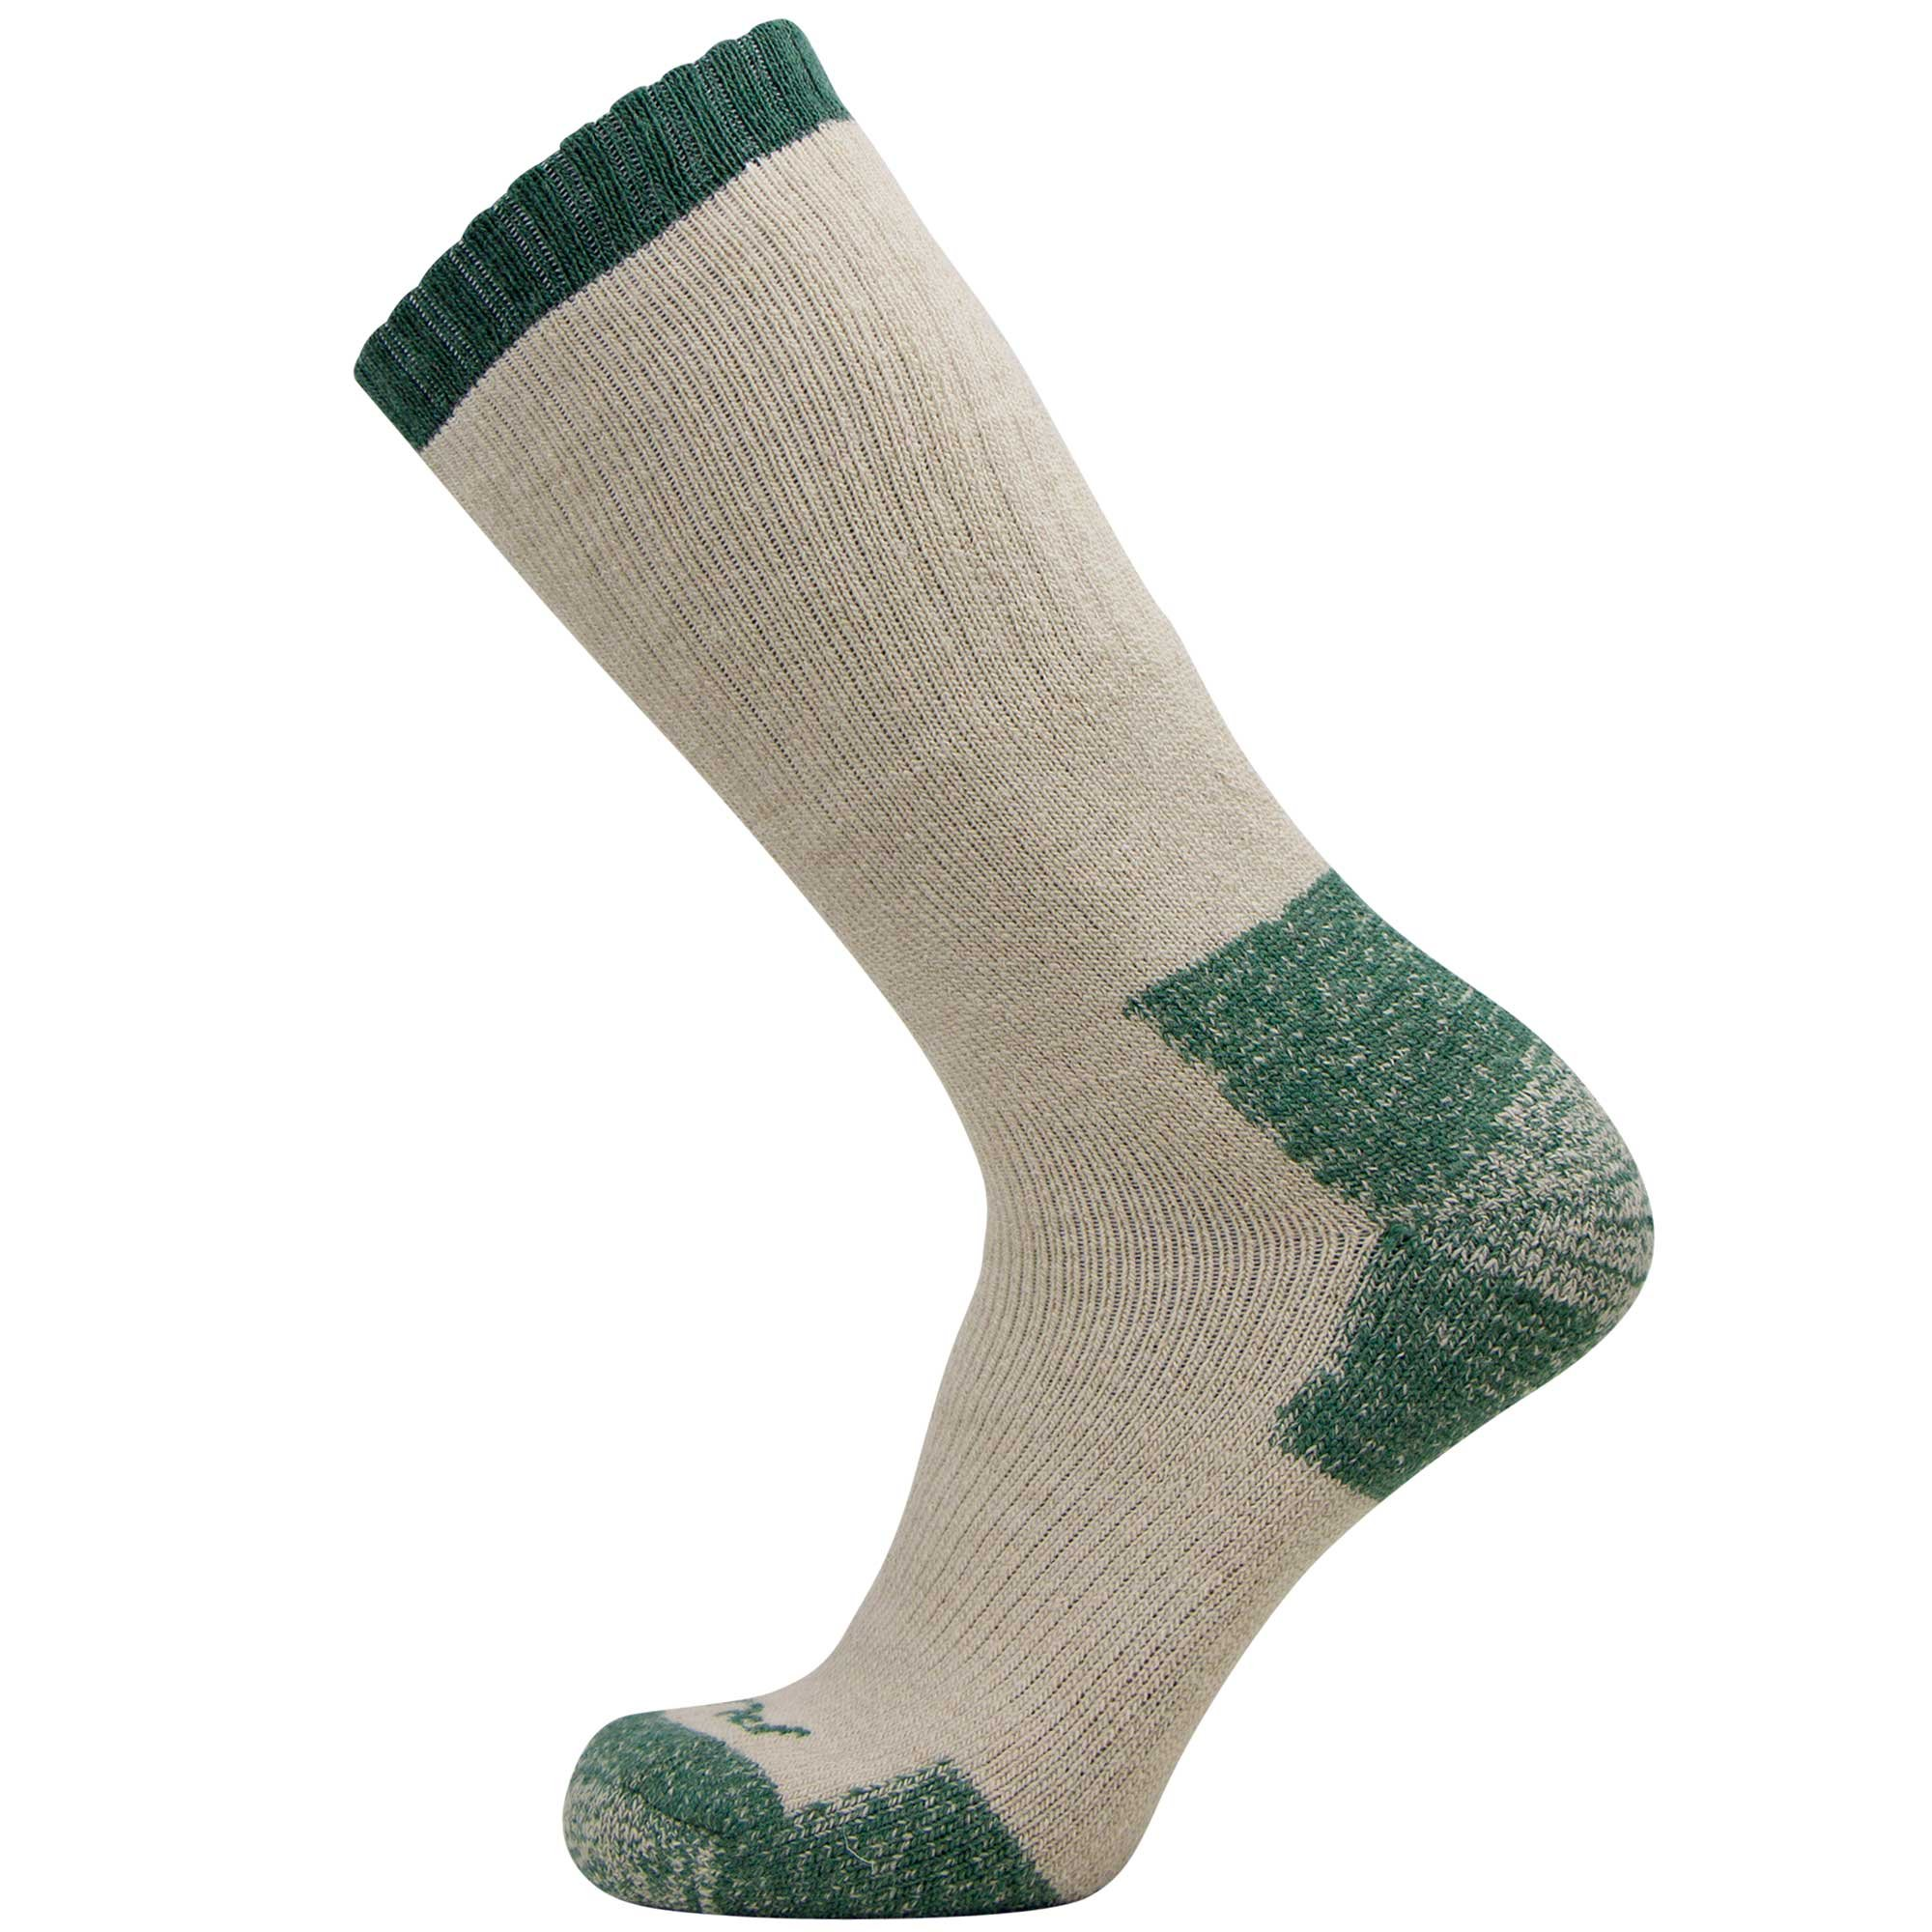 Wicked Warm Boot Socks – Premium Merino Wool Hiking Socks for Men and Women – Thick Heavy Cushioned Work Sock (L/XL, Tan/Green)